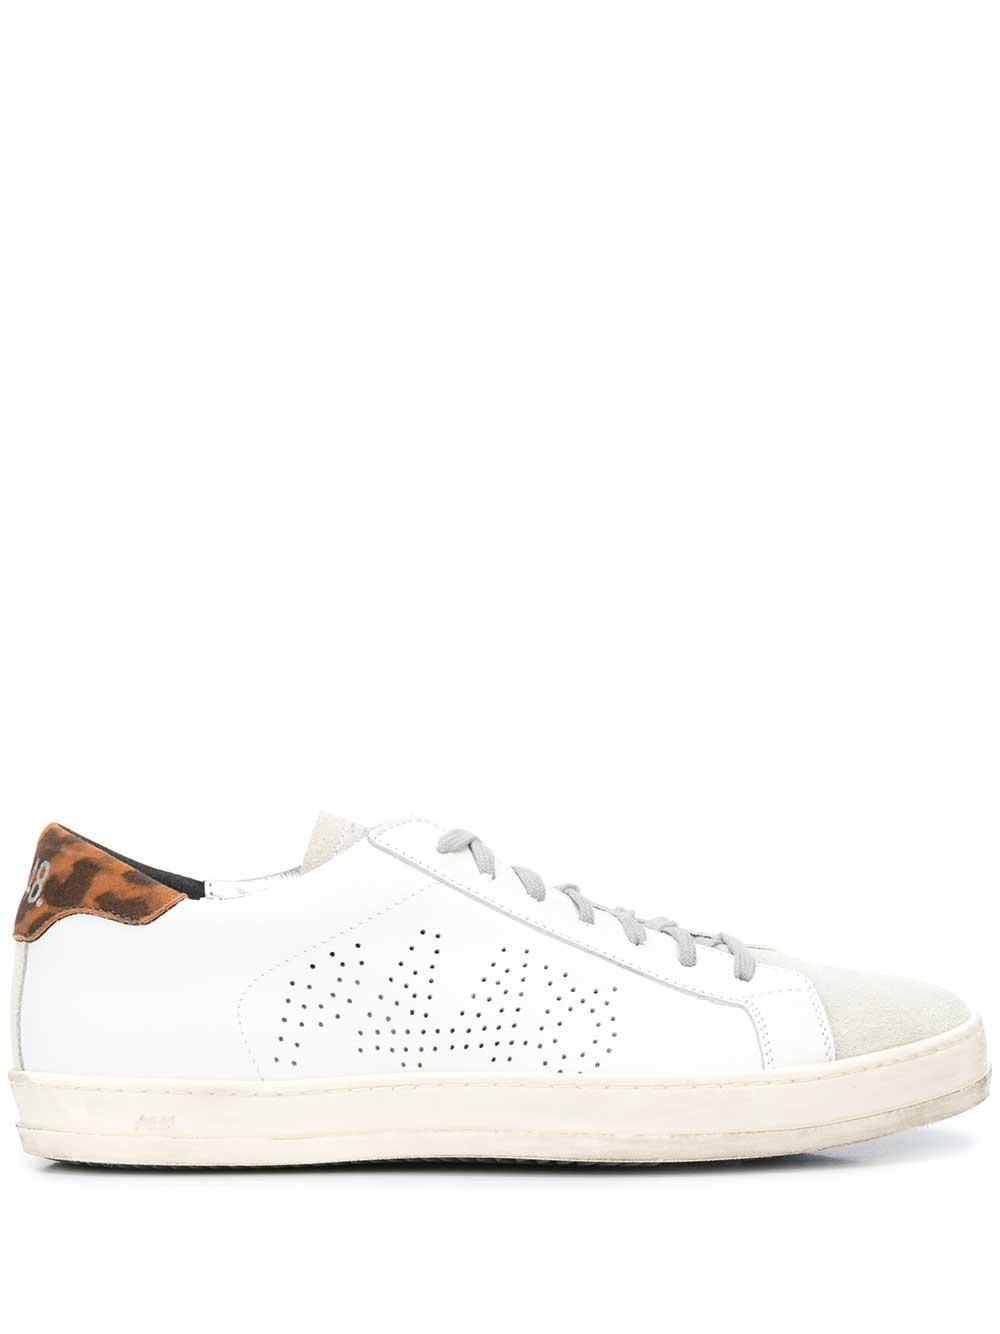 P448 Perforated Sneaker With Leopard Tab